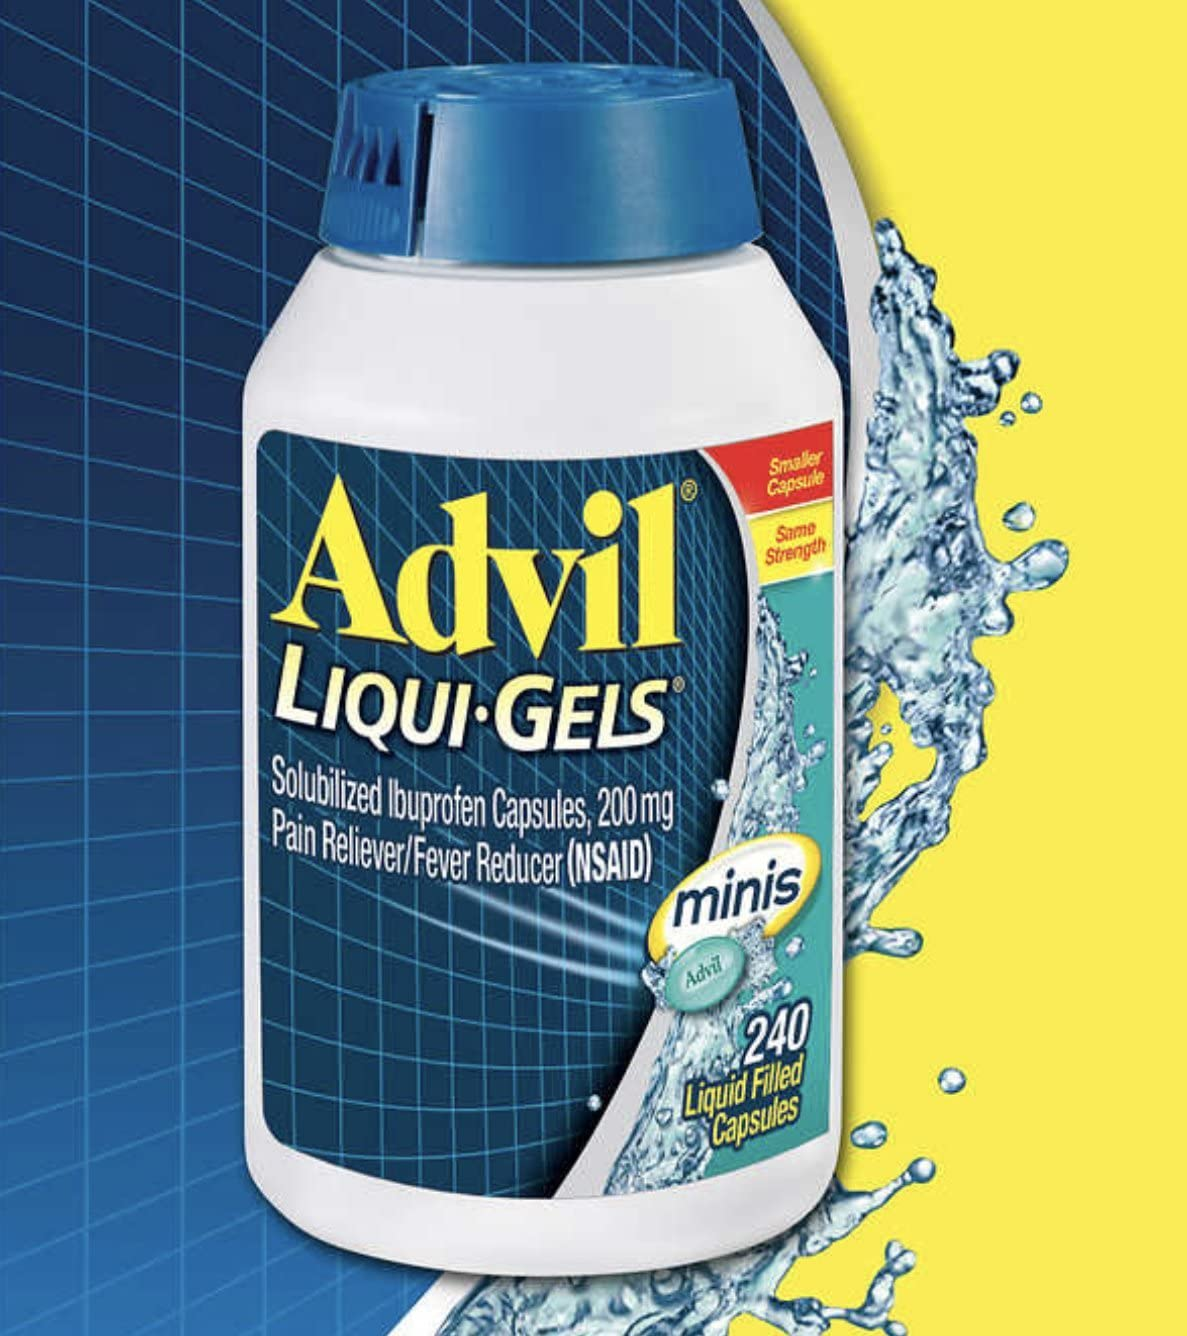 Weekly update Advil Liqui-Gels Minis Max 75% OFF 240 Count Pain Reliever L Reducer Fever